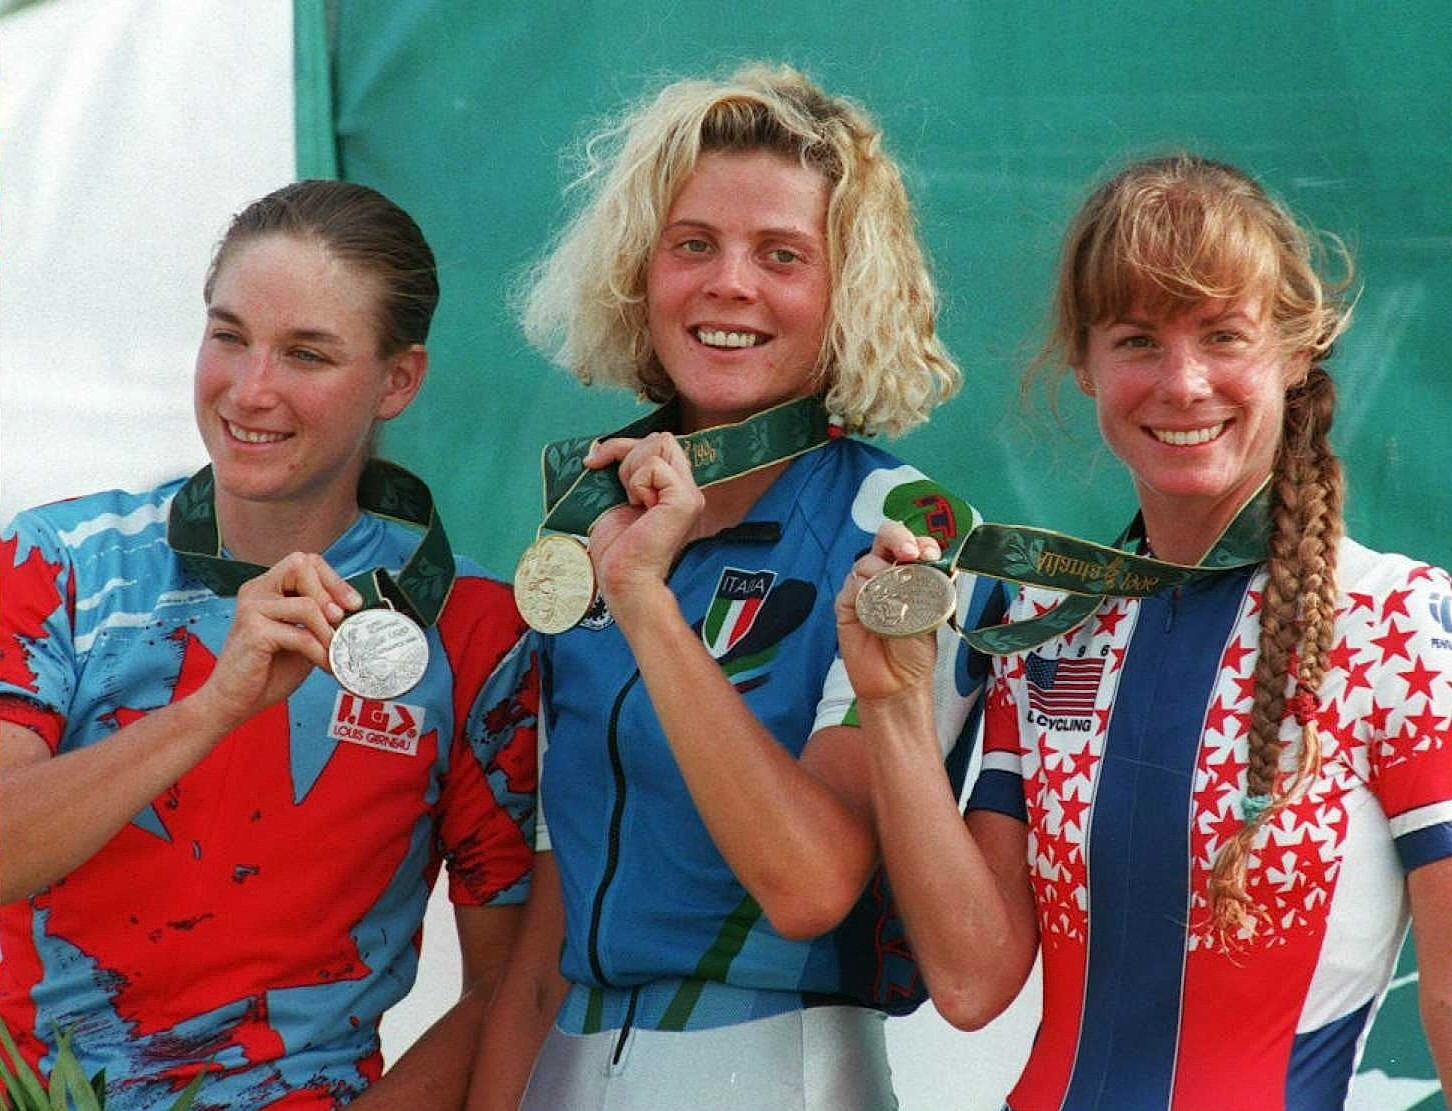 Susan (R) on the 1996 Atlanta Olympics podium with silver medallist Alison Sydor (L), and winner Paola Pezzo